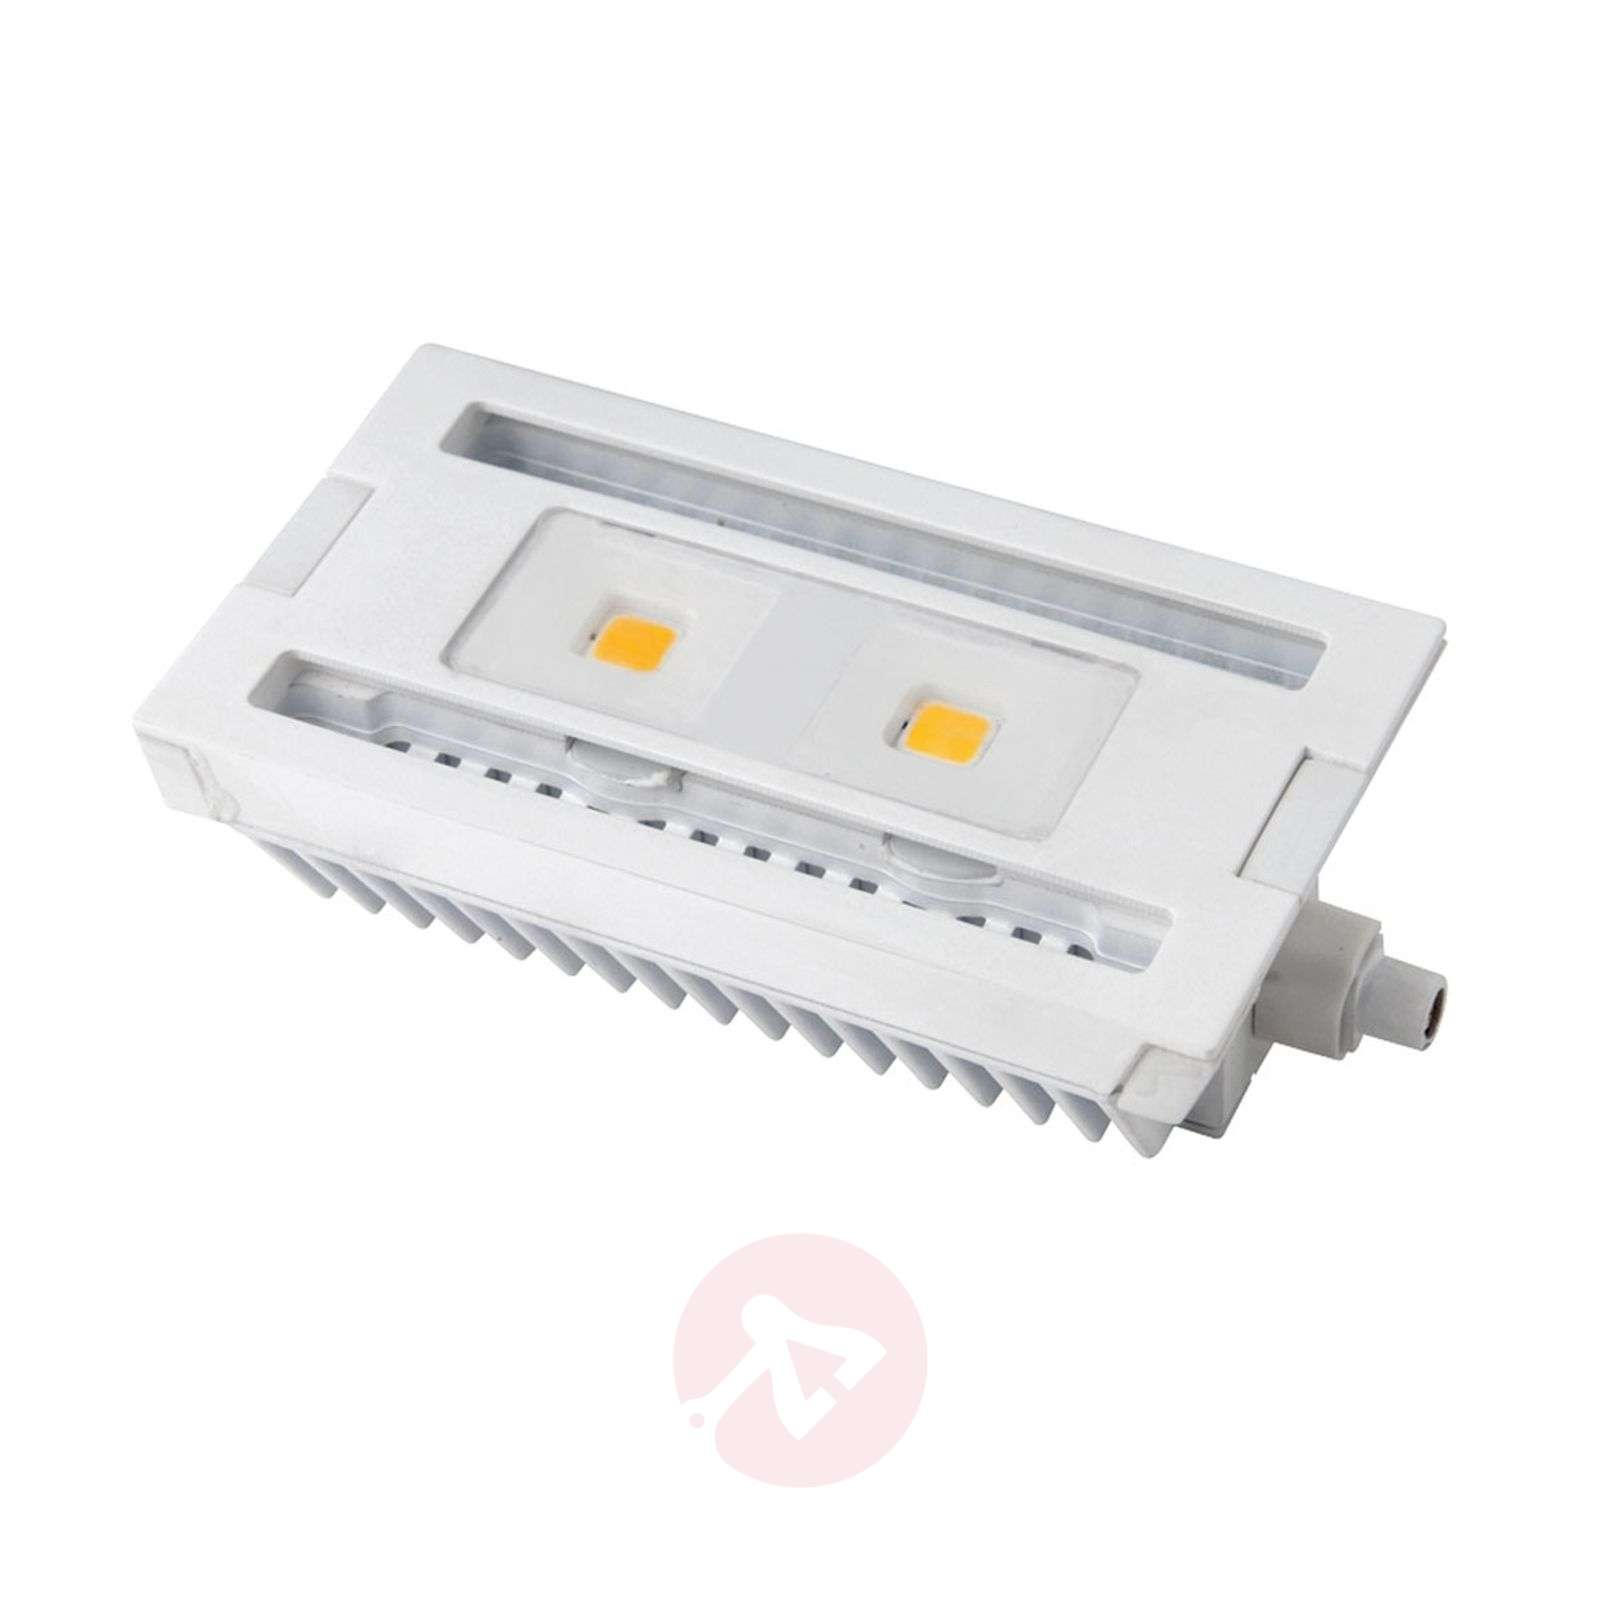 R7s 9 W bombilla lineal LED 118mm, 2800K-6530143-01